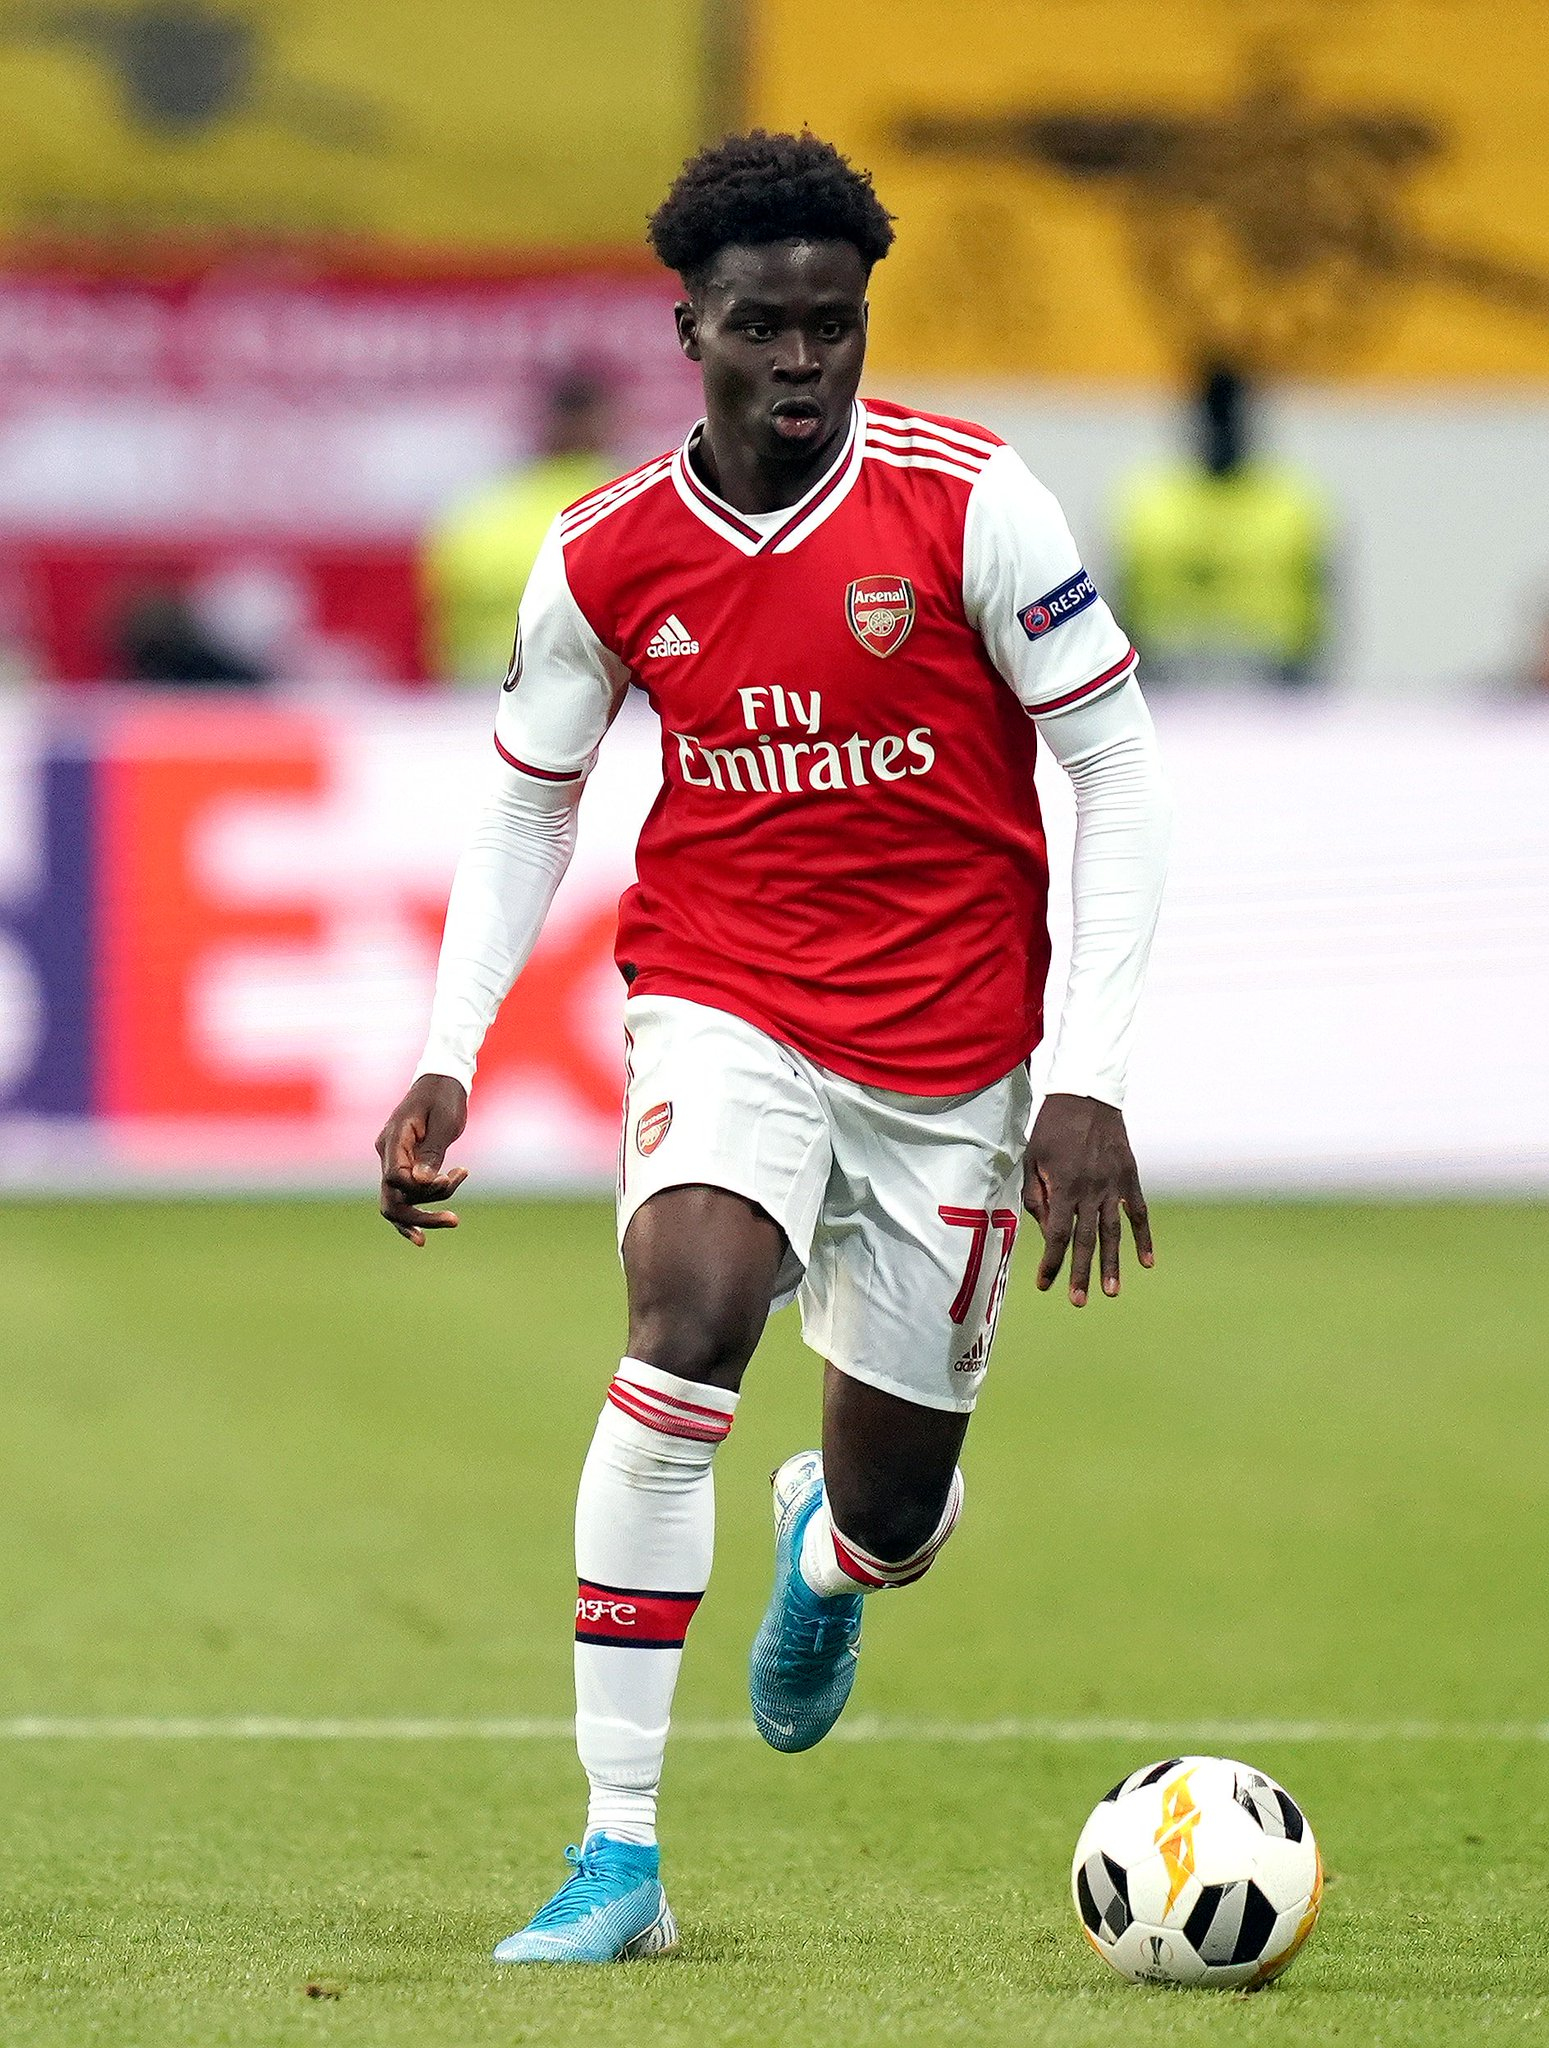 Saka Gets High Rating In Arsenal's FA Cup Win vs Portsmouth